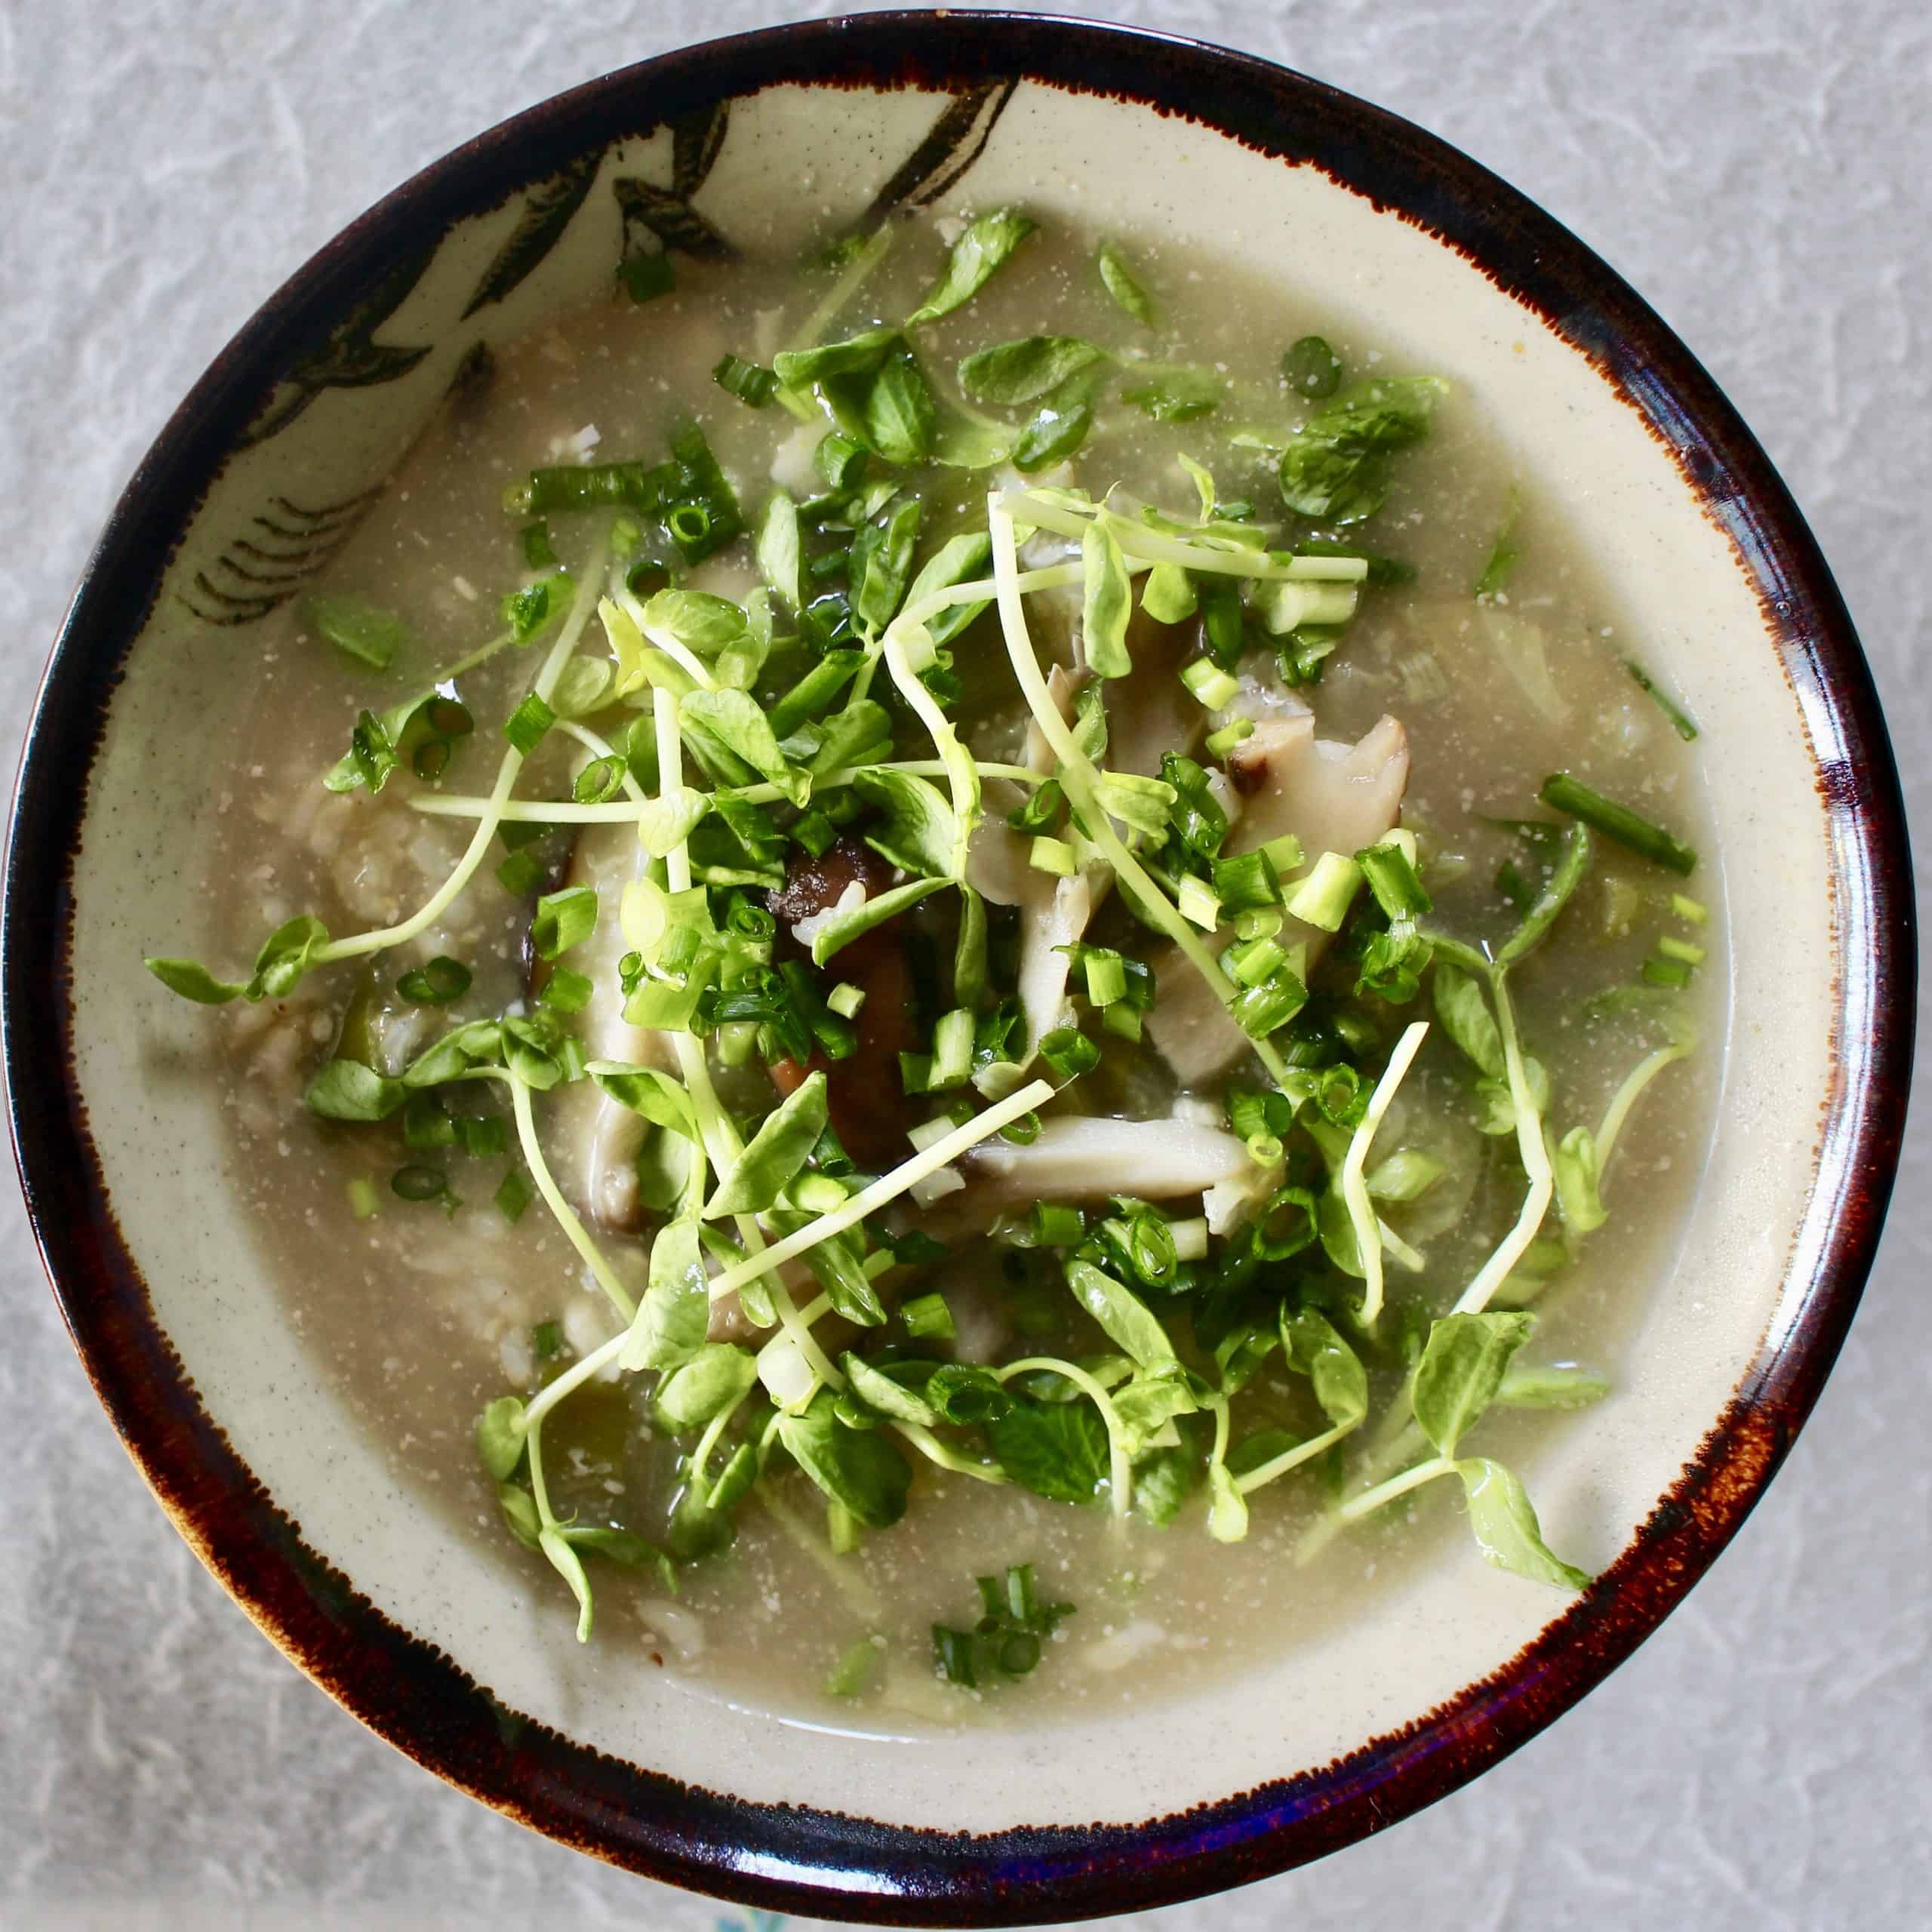 Miso brown rice soup in a brown bowl